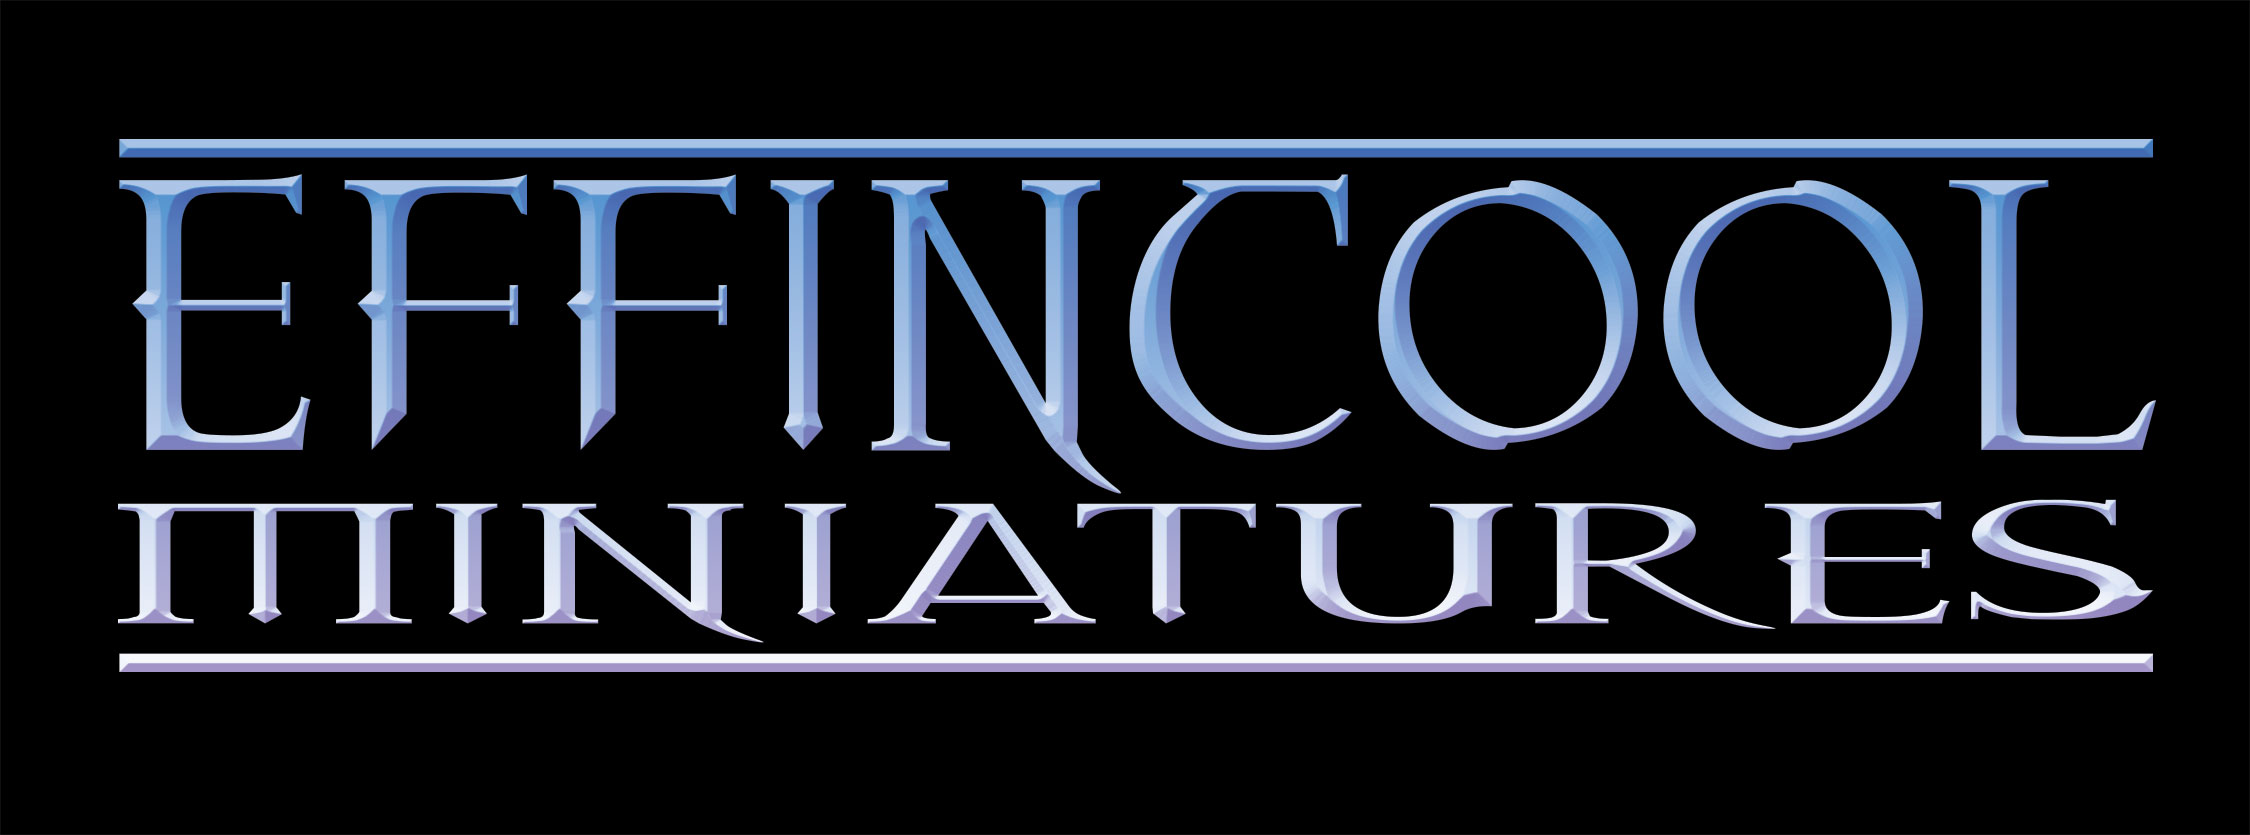 Effincool Miniatures Logo